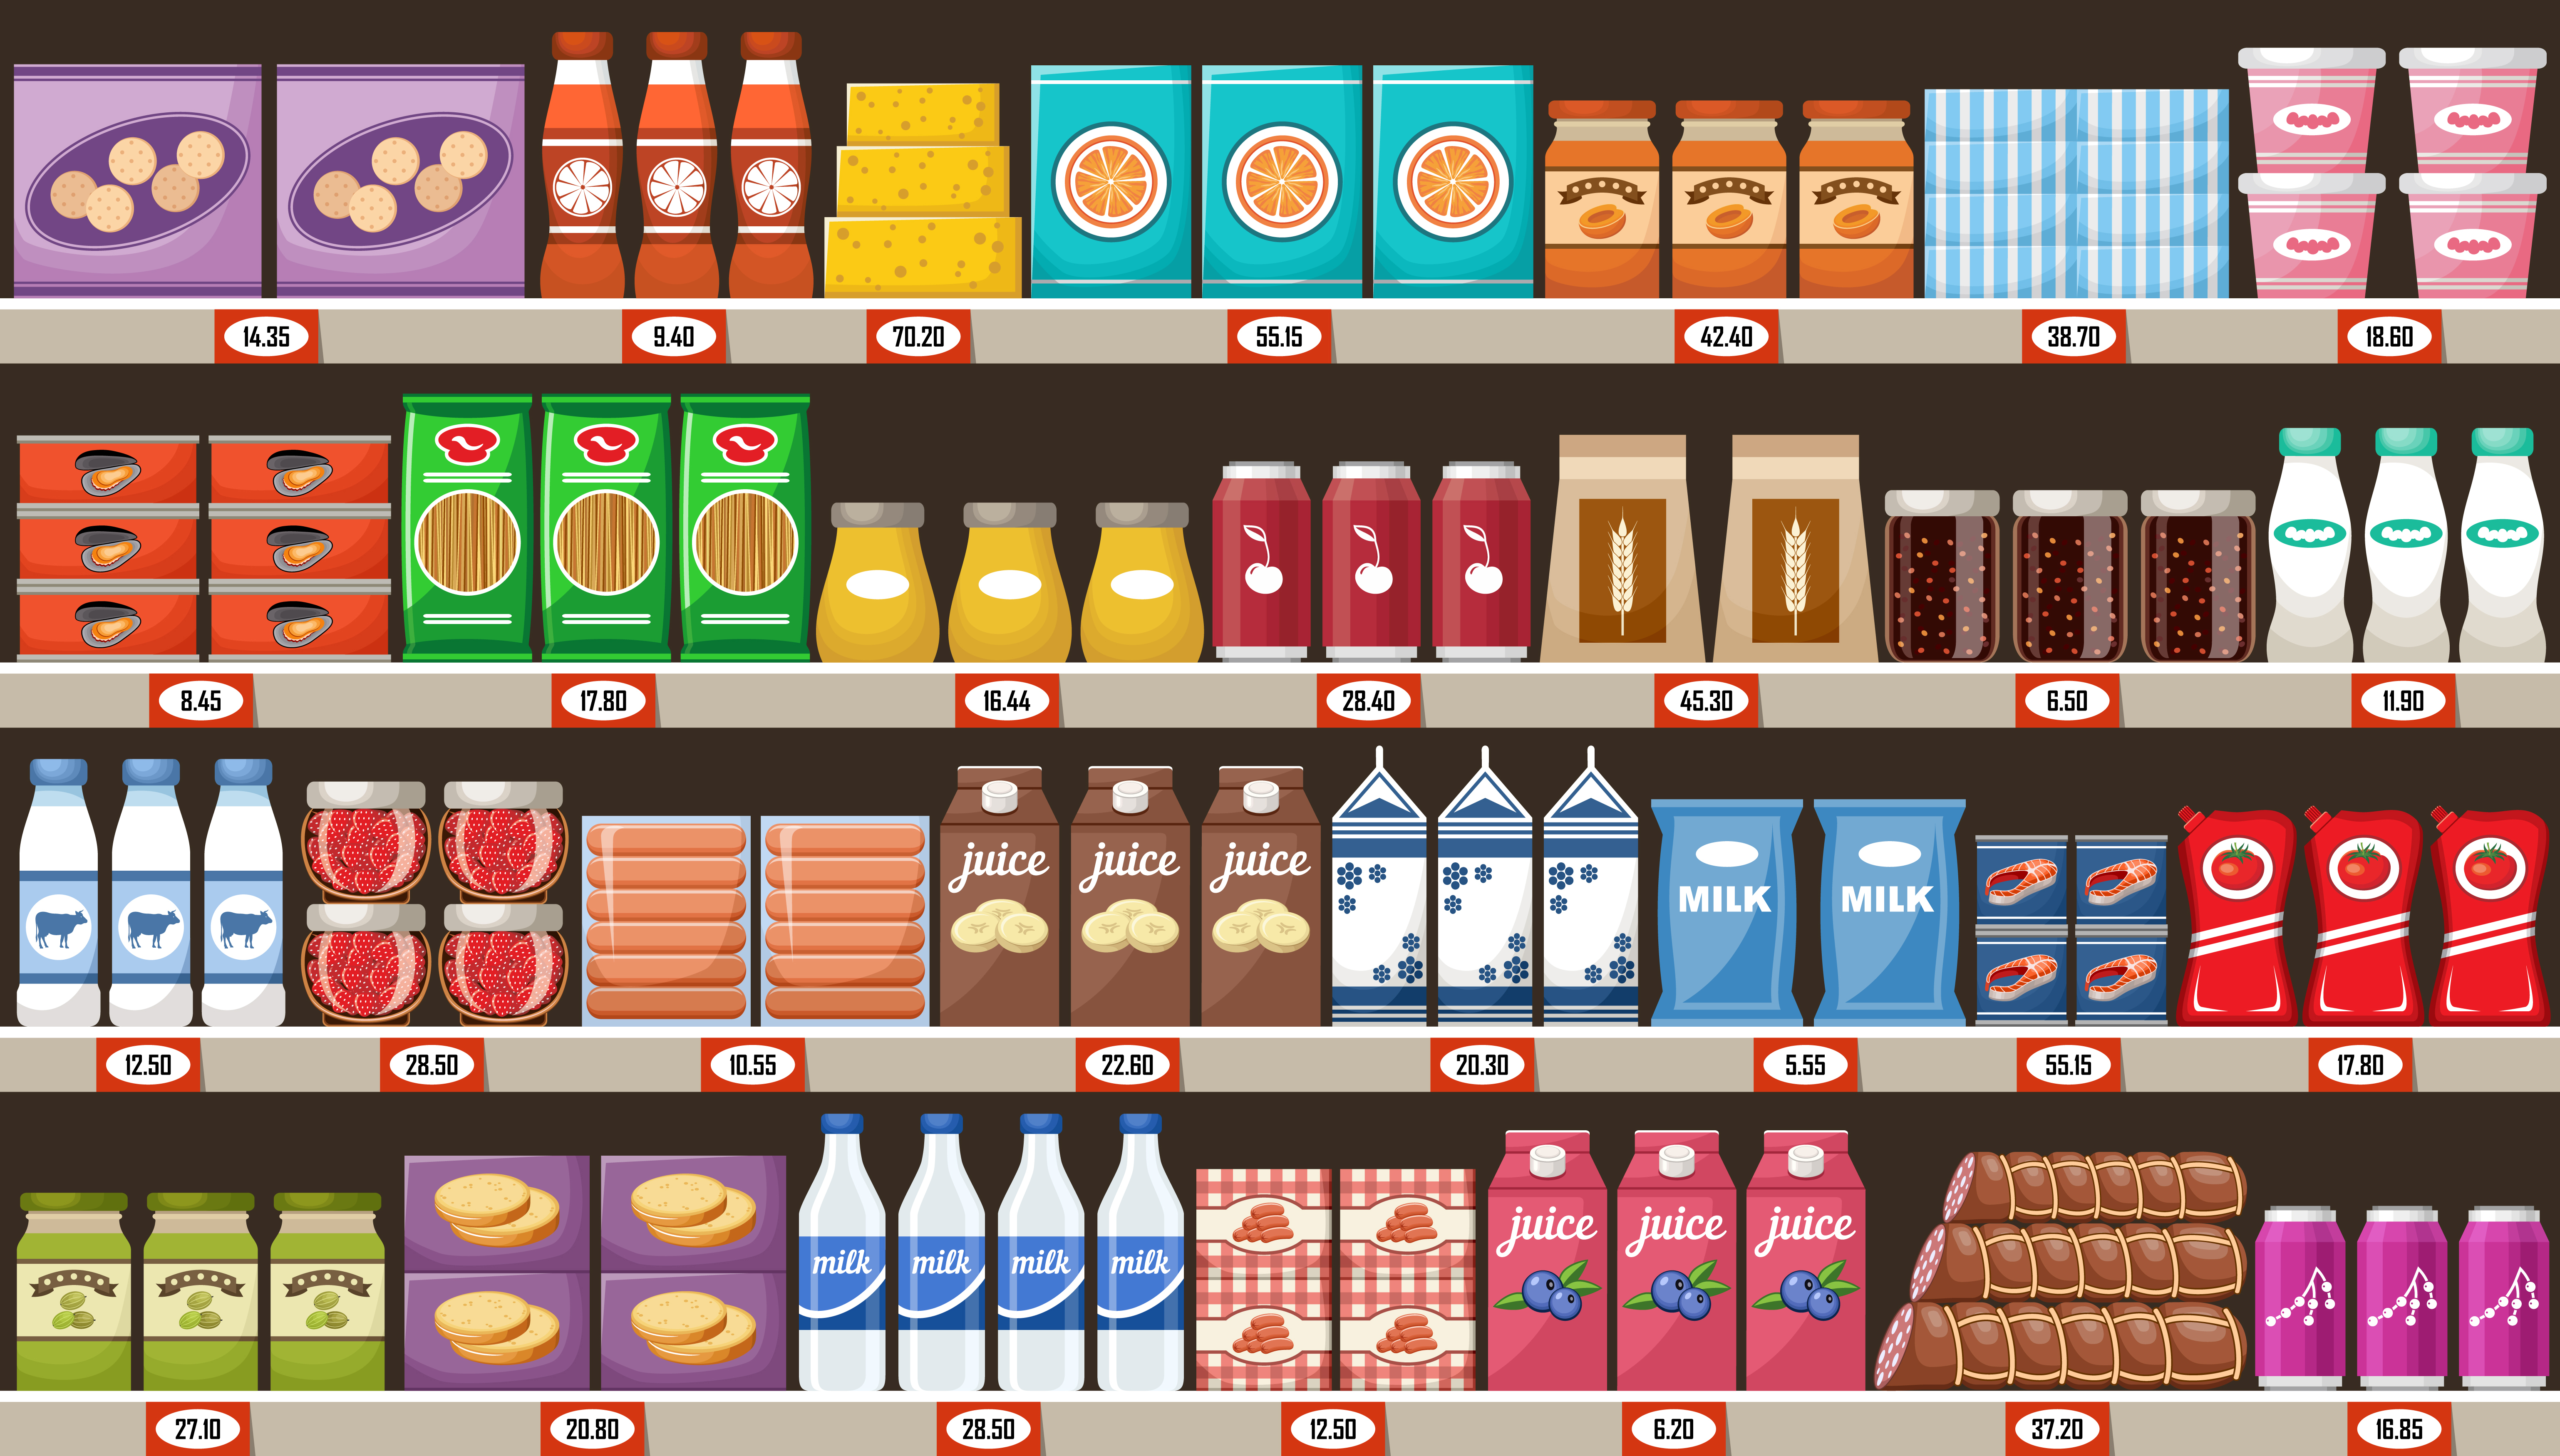 The First 10 Things to Disappear from Store Shelves During an Emergency